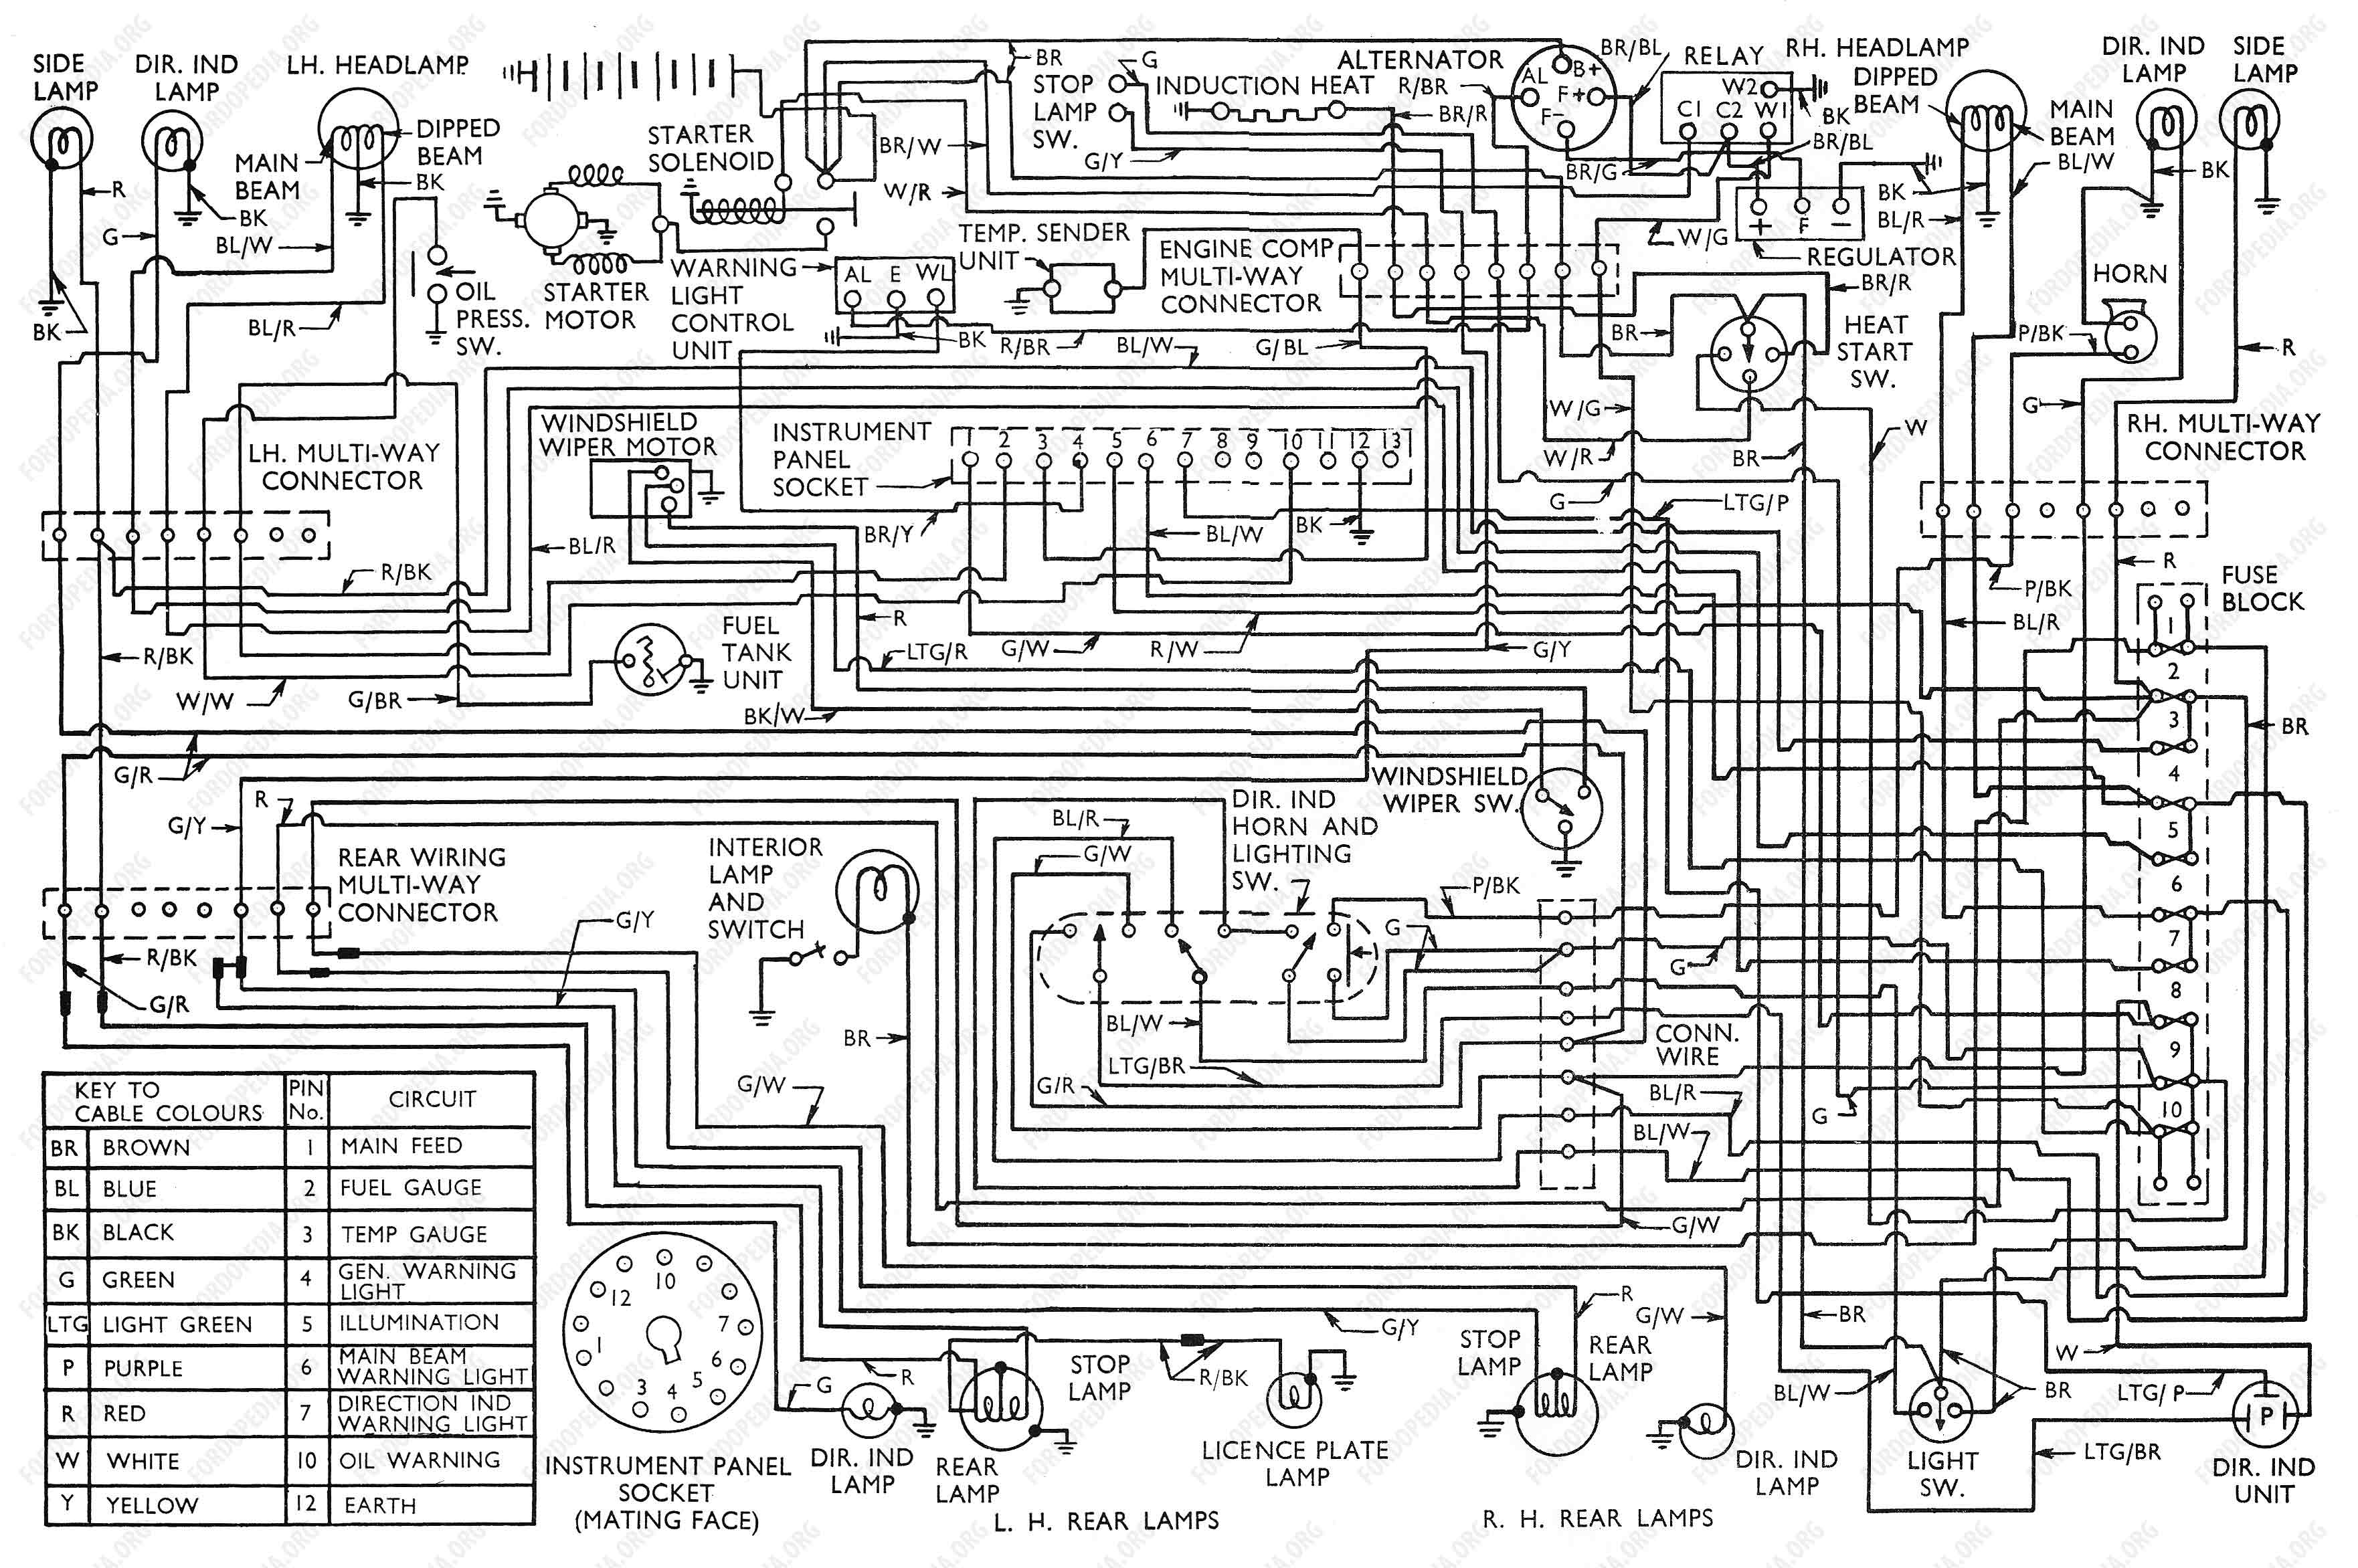 wiring diagram diesel fordopedia org ford transit wiring diagram at gsmx.co